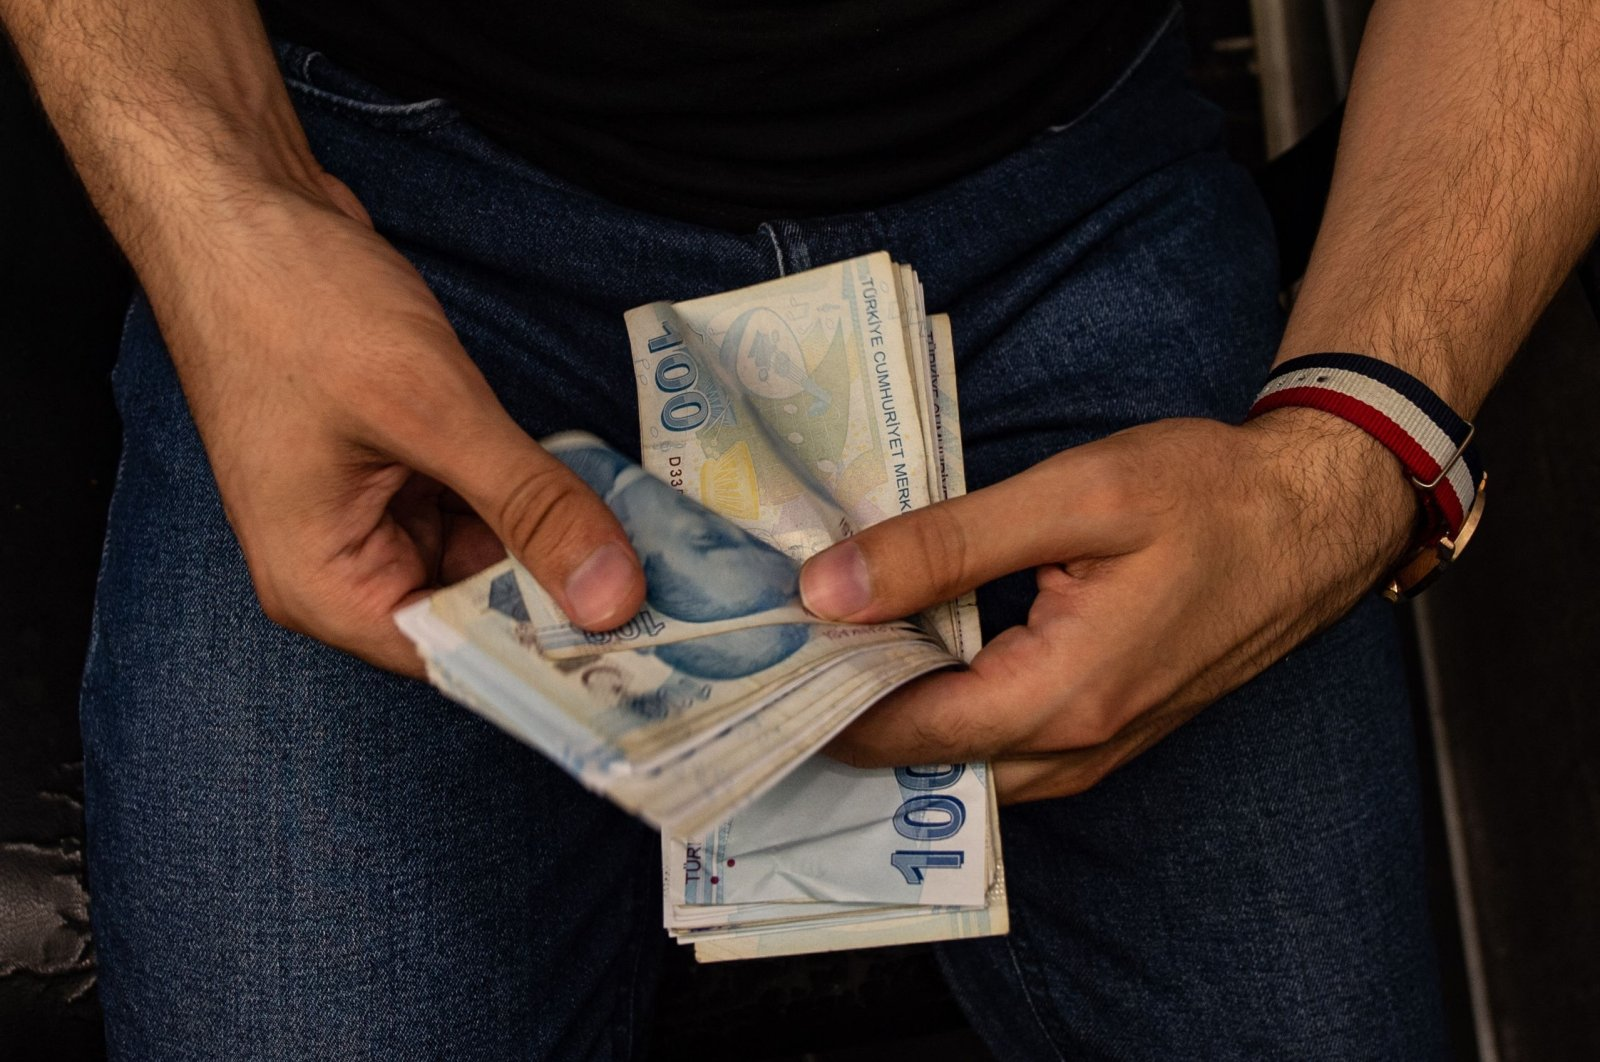 A currency exchange office worker counts Turkish Lira banknotes at an exchange office in Istanbul, Turkey, Aug. 6, 2020. (AFP Photo)